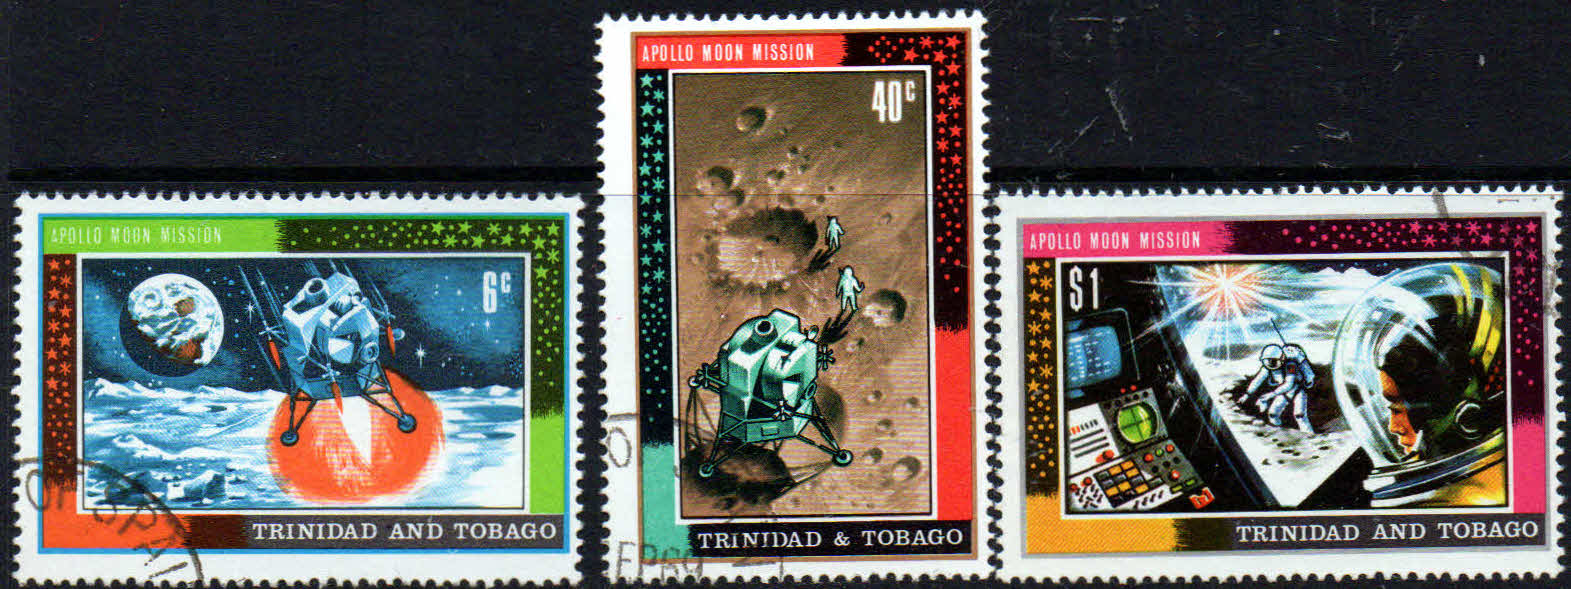 Trinidad and Tobago 1969 First Man on the Moon Set Fine Used